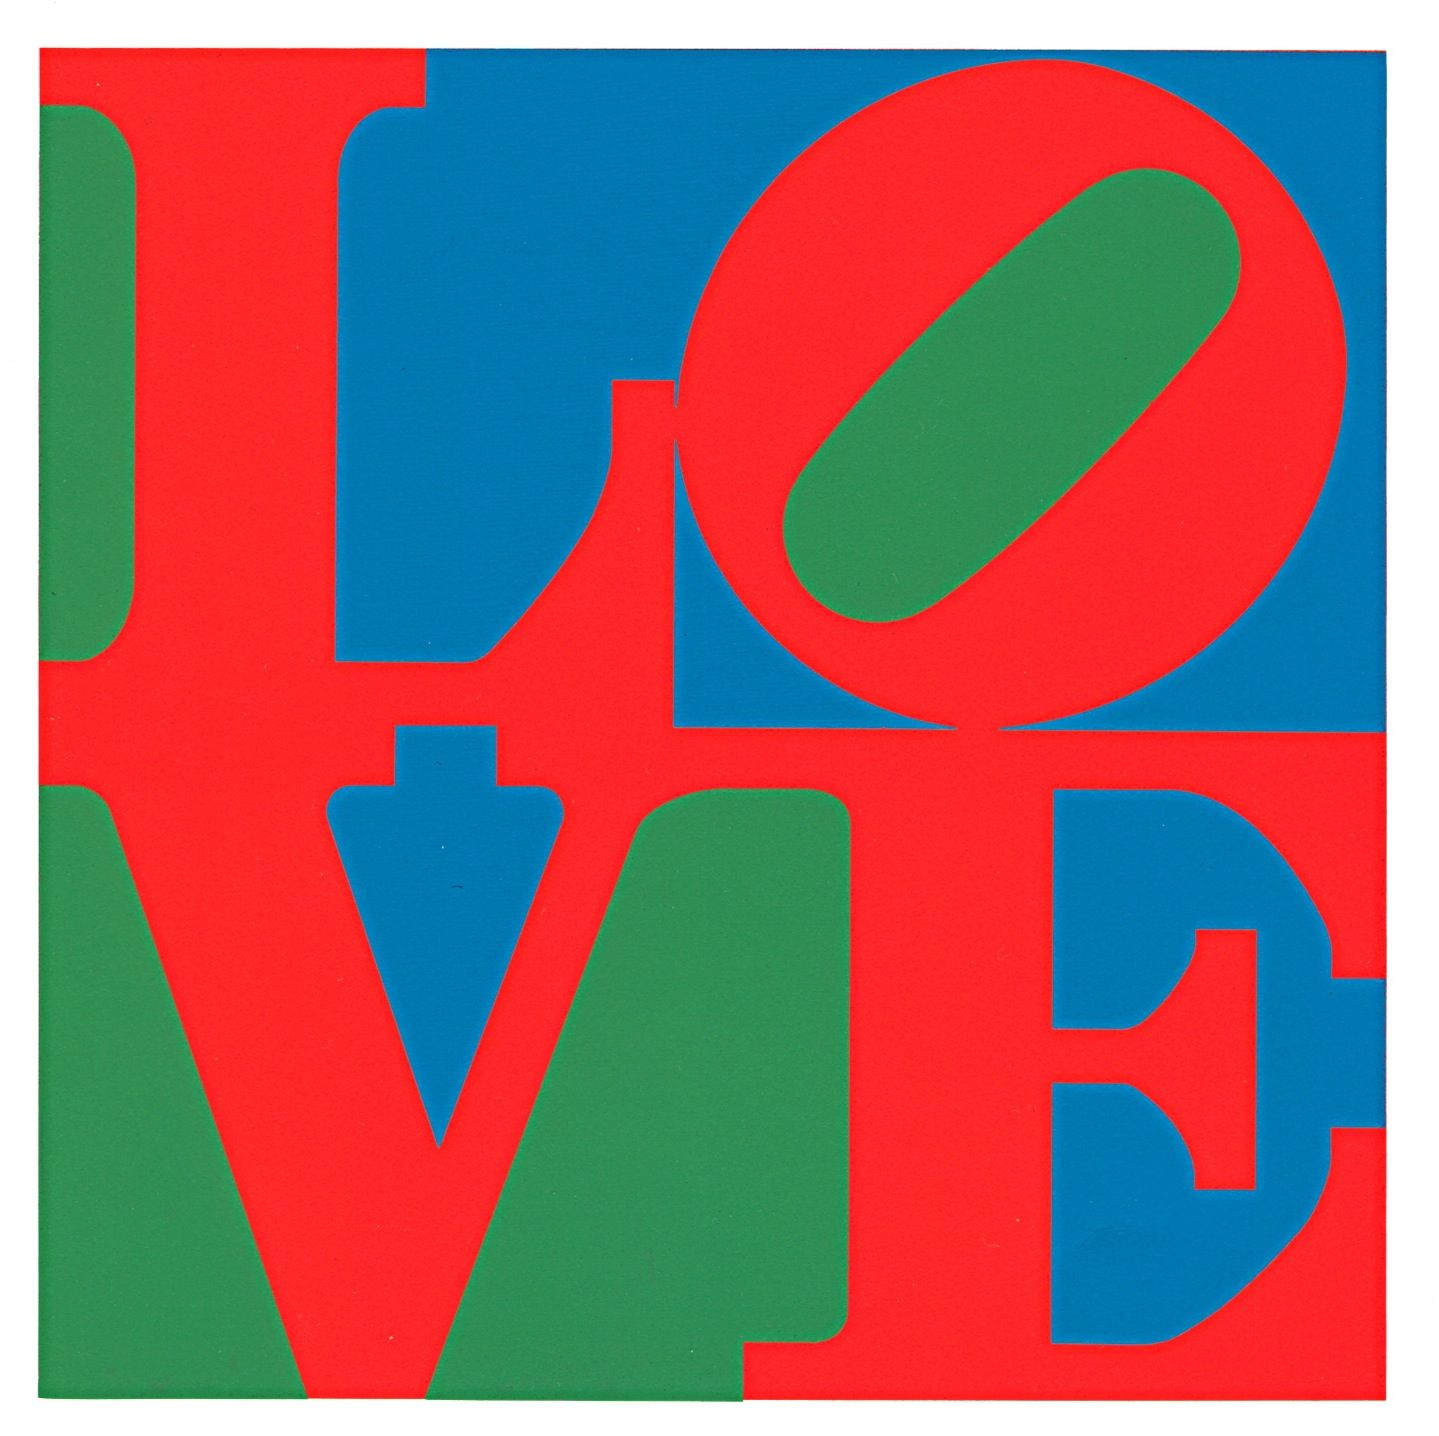 love fame works by robert indiana and andy warhol